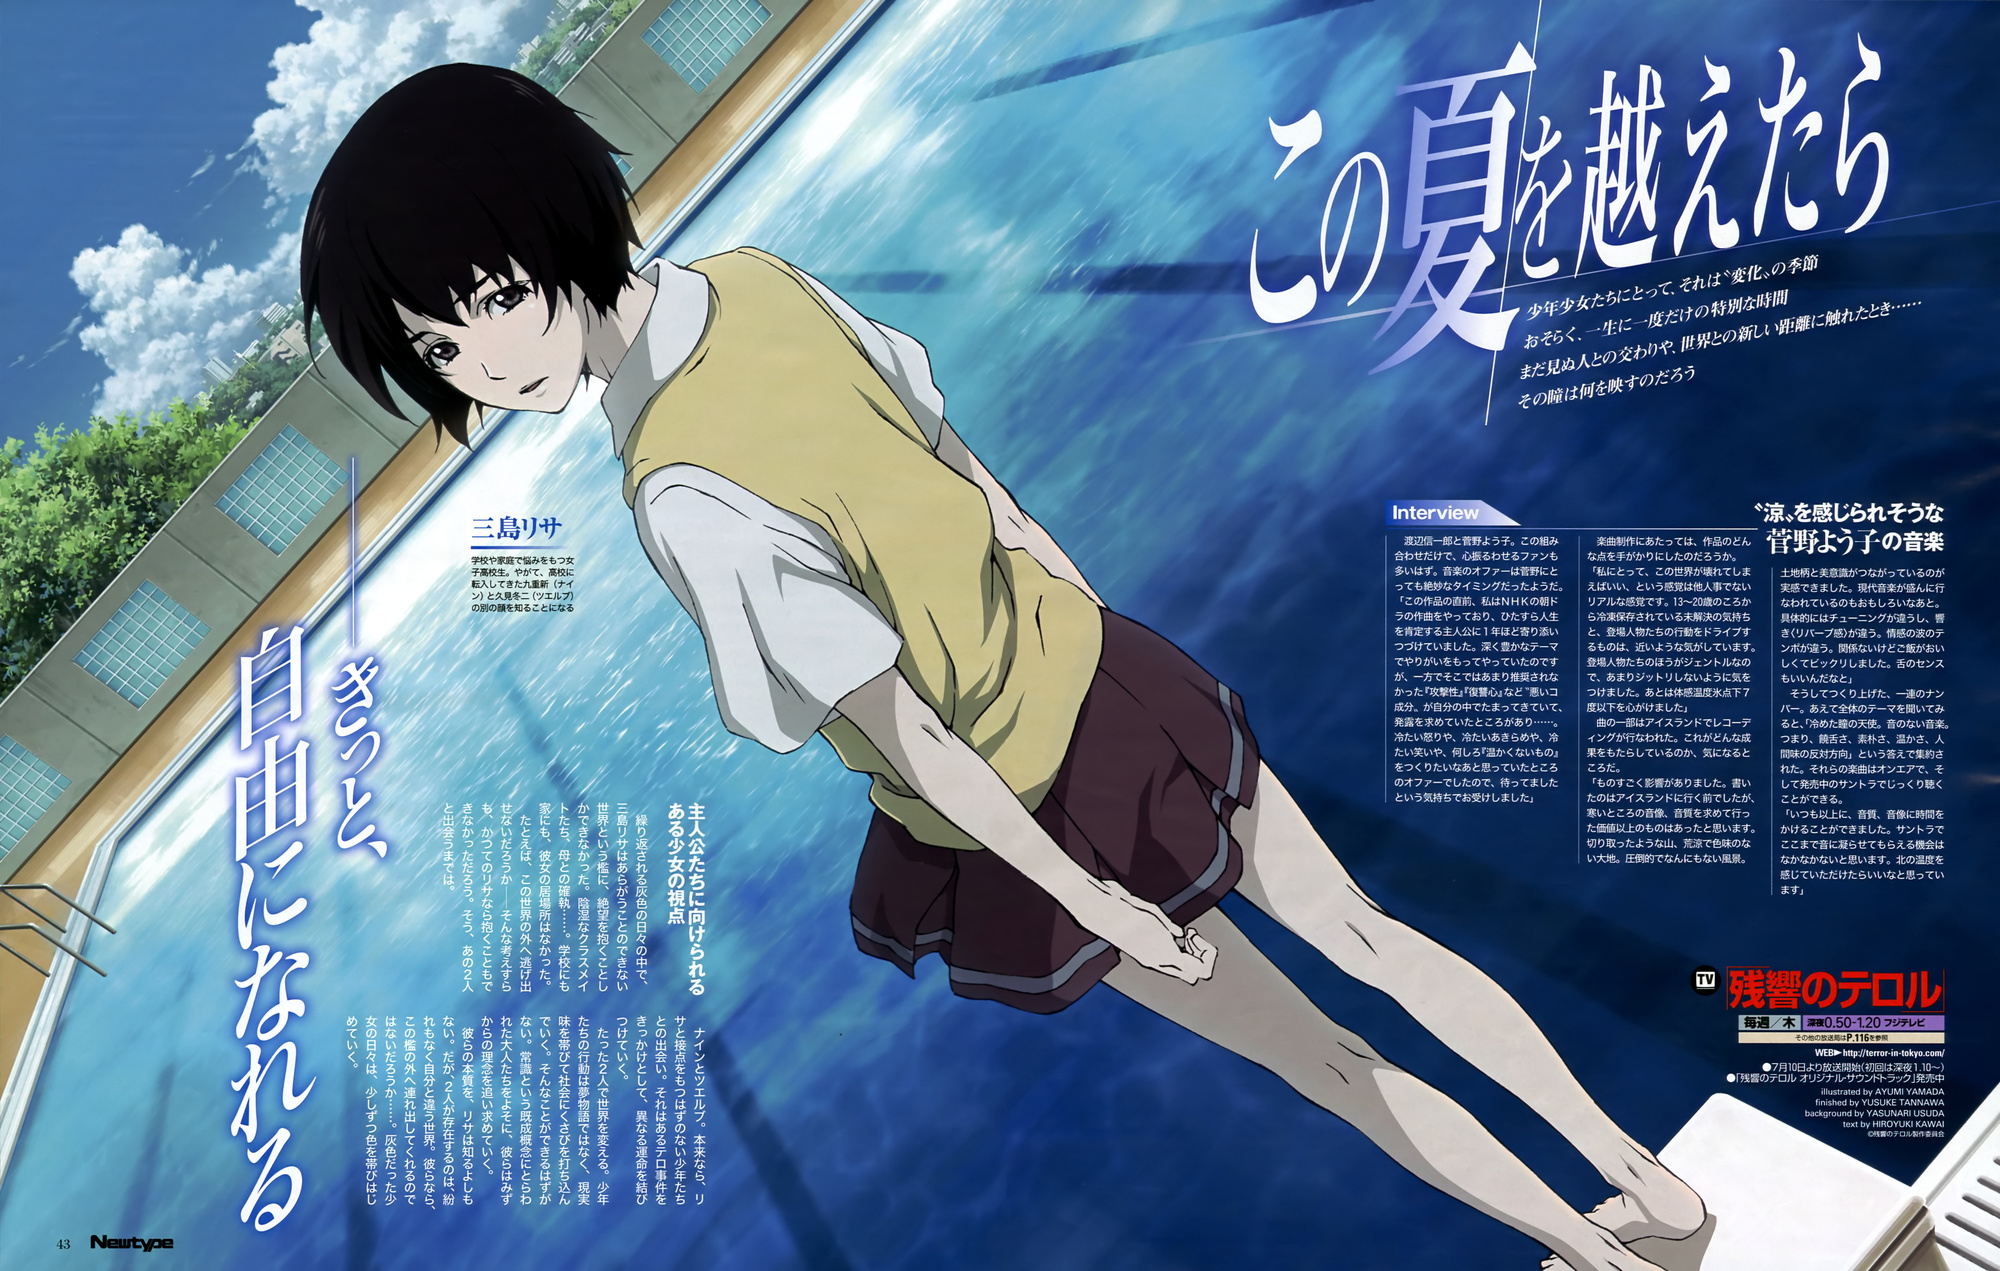 Zankyou no Terror - My Anime Shelf